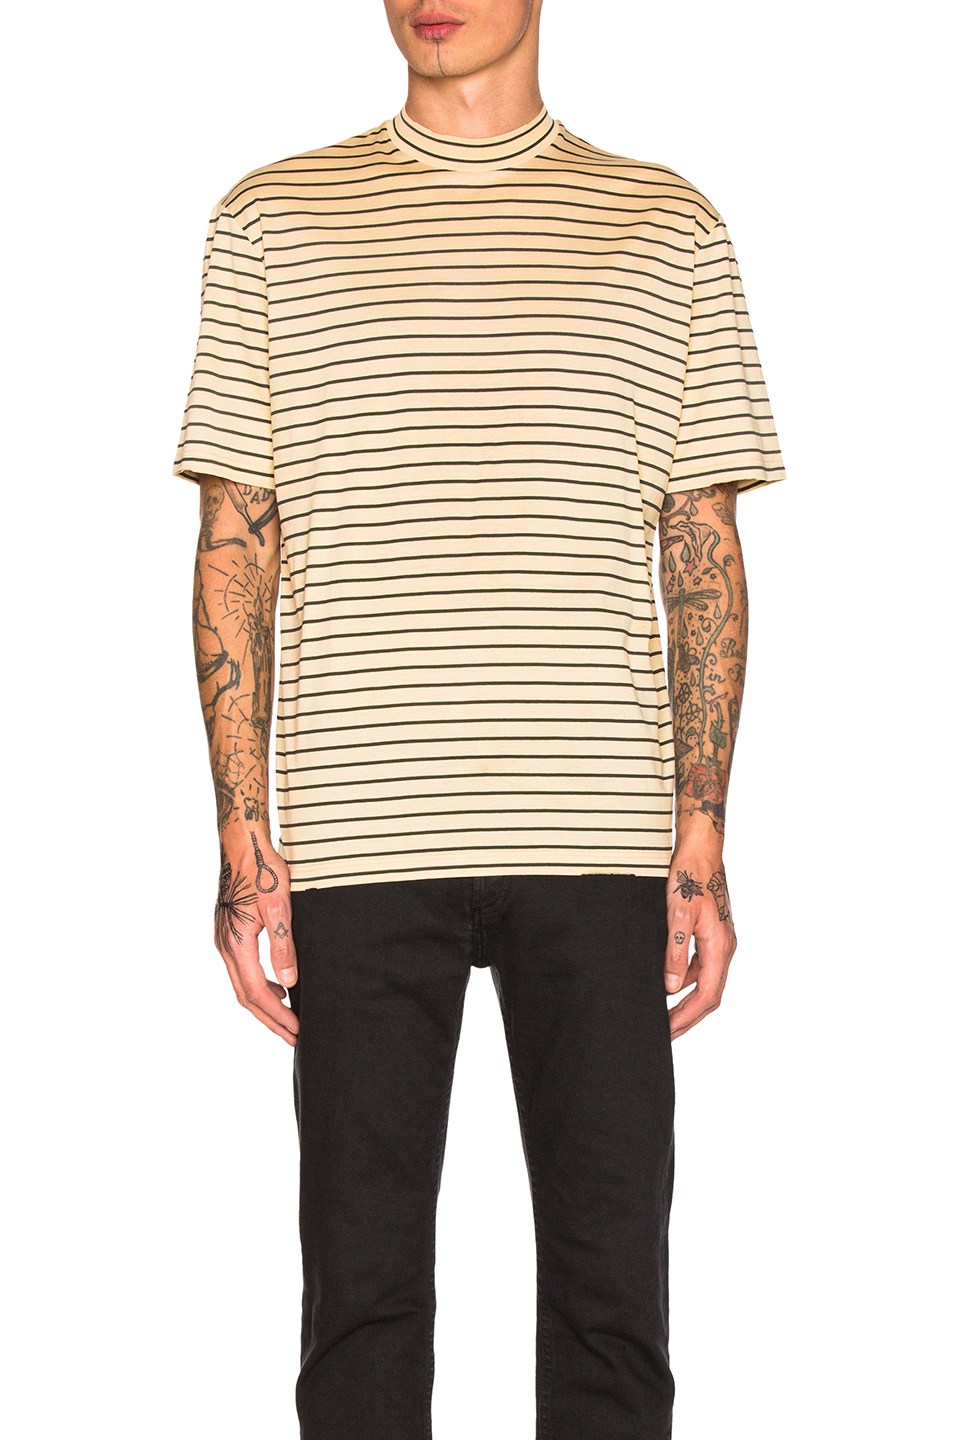 Lanvin Striped Tee in Neutrals,Stripes